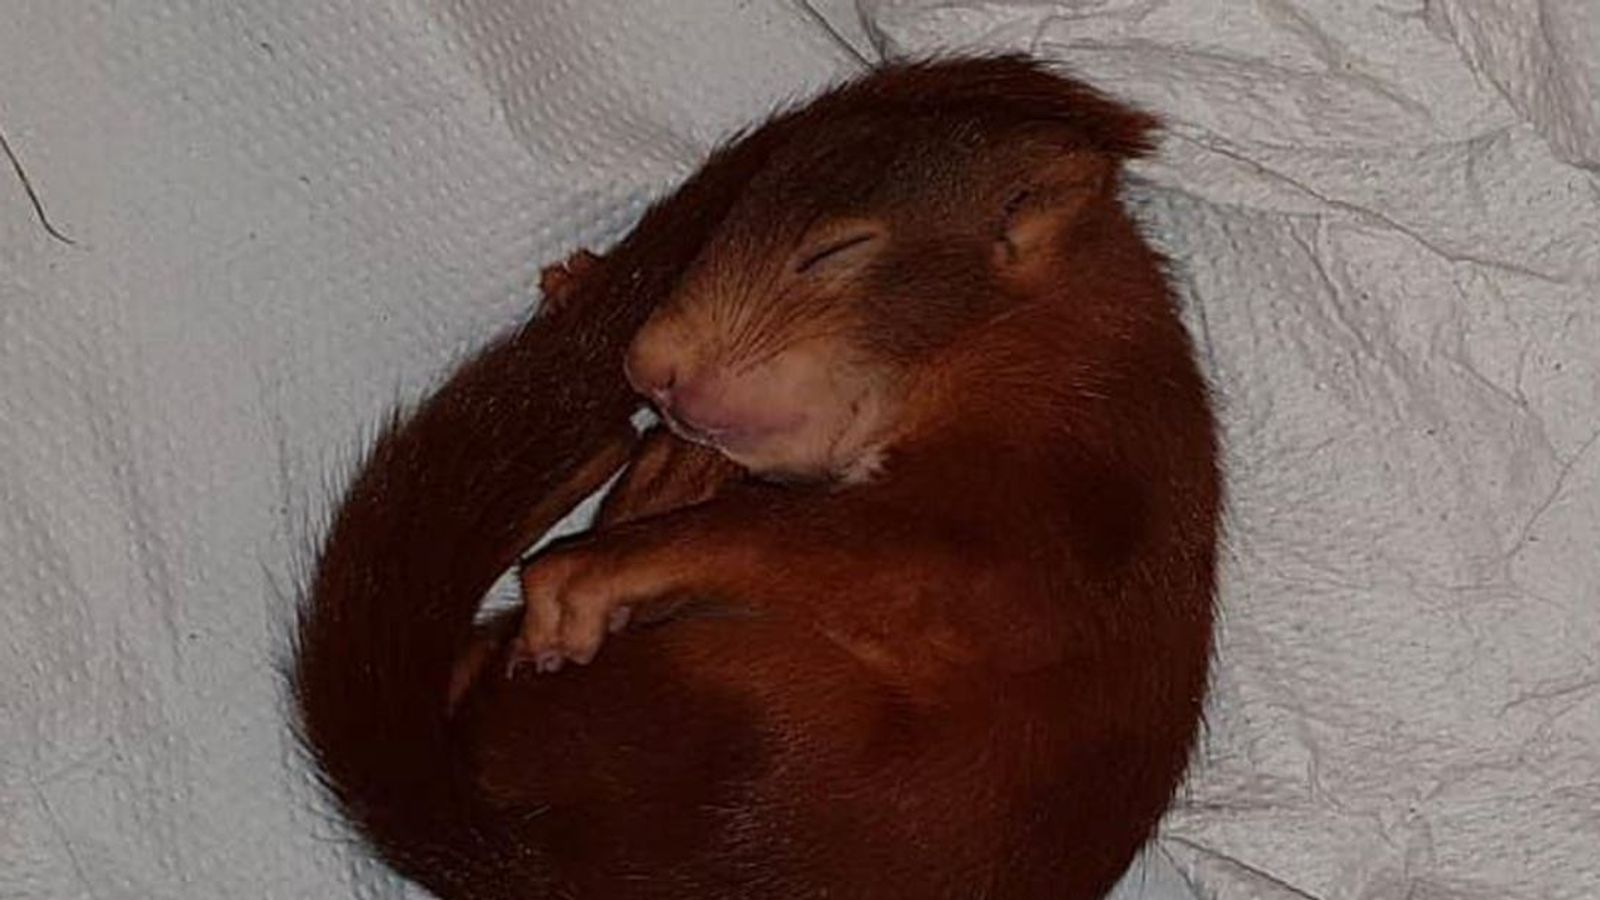 Man calls police: 'I'm being chased by a baby squirrel'